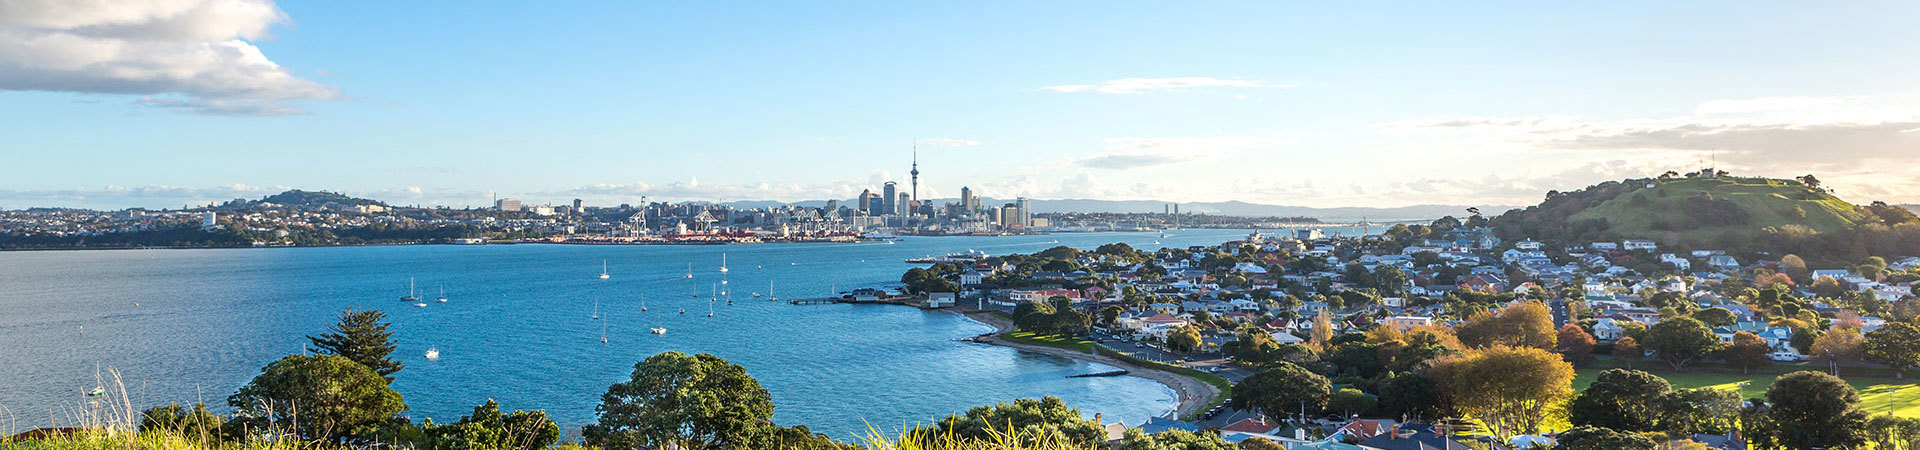 View of Auckland harbour and city, New Zealand